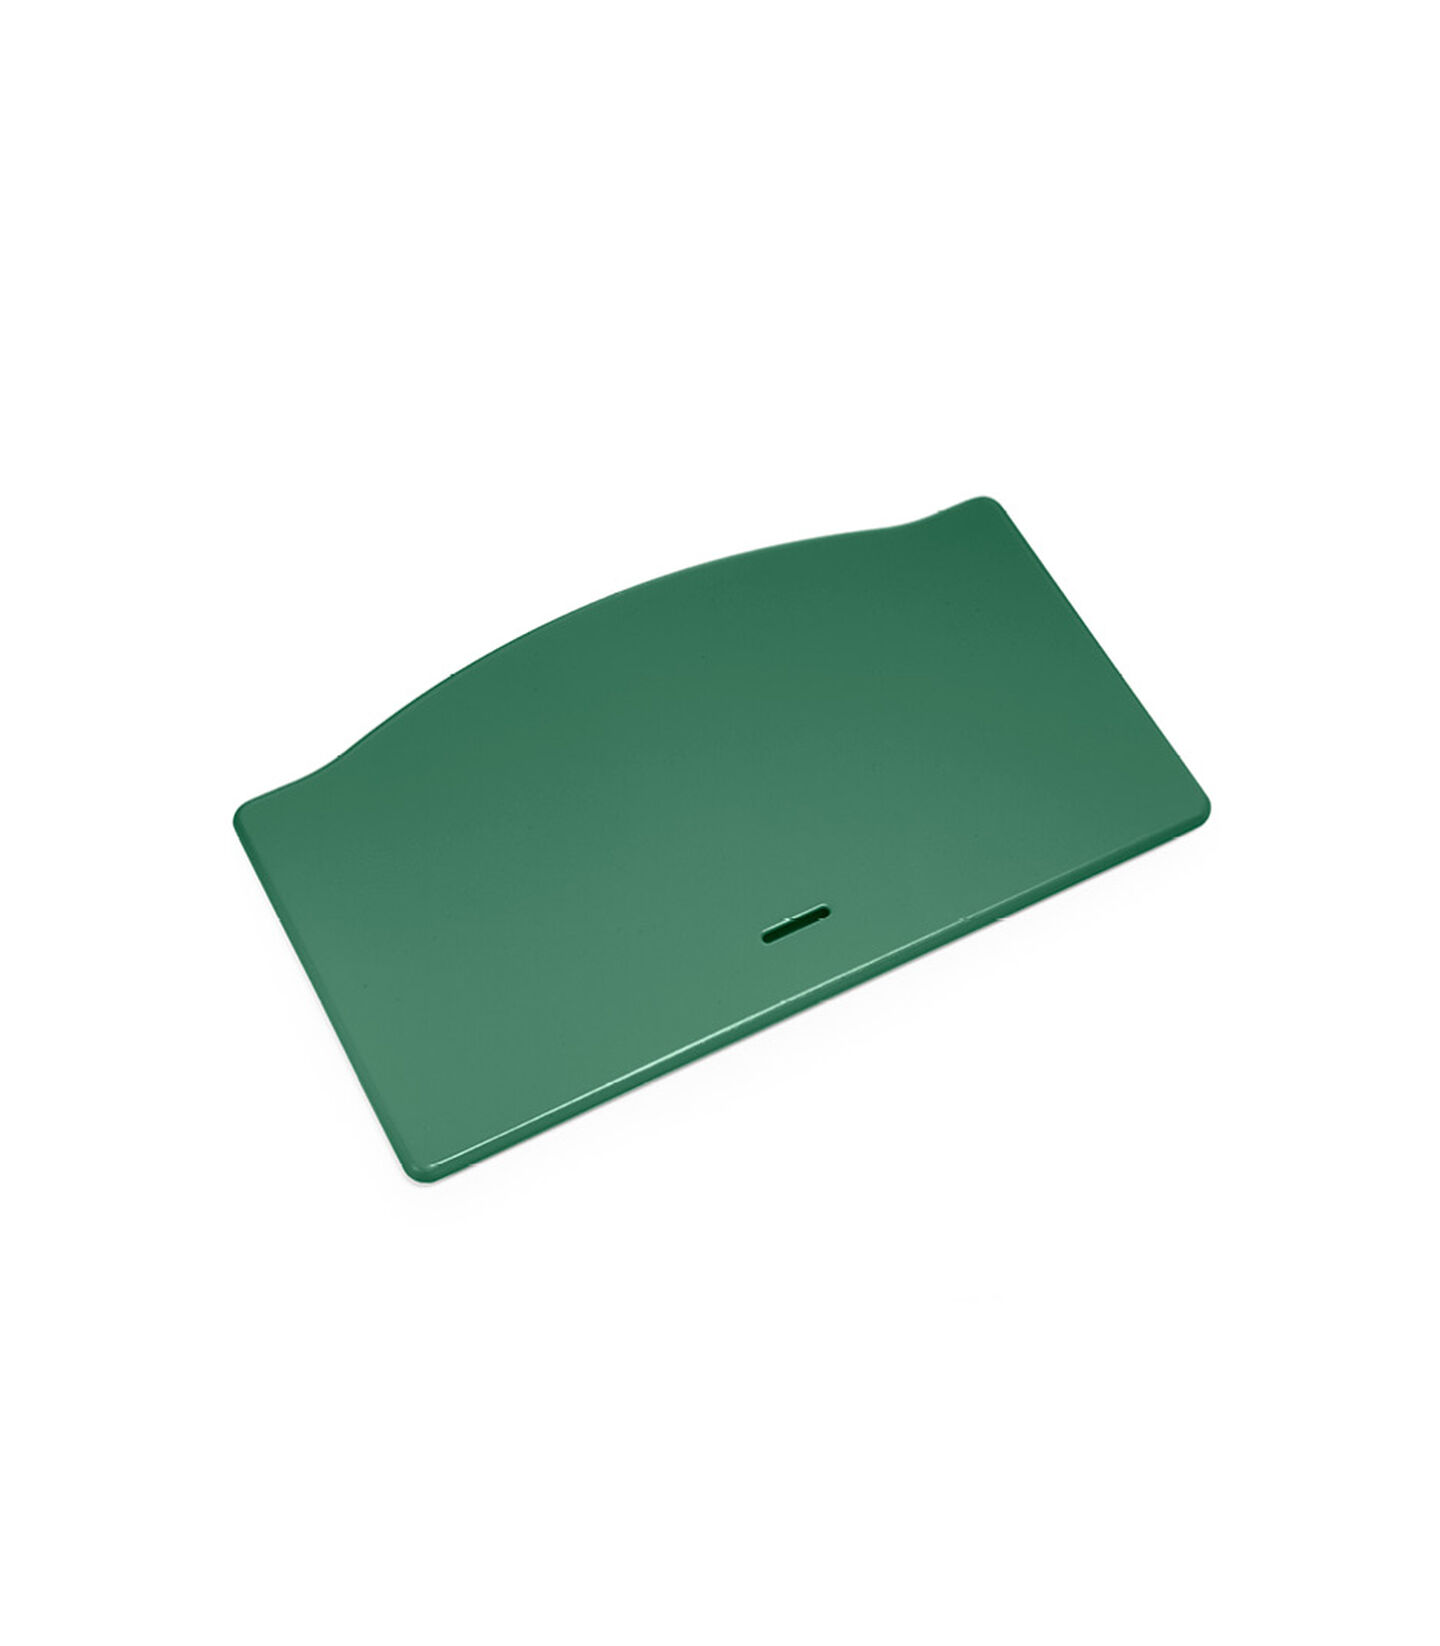 Tripp Trapp® Seatplate Forest Green, Verde Foresta, mainview